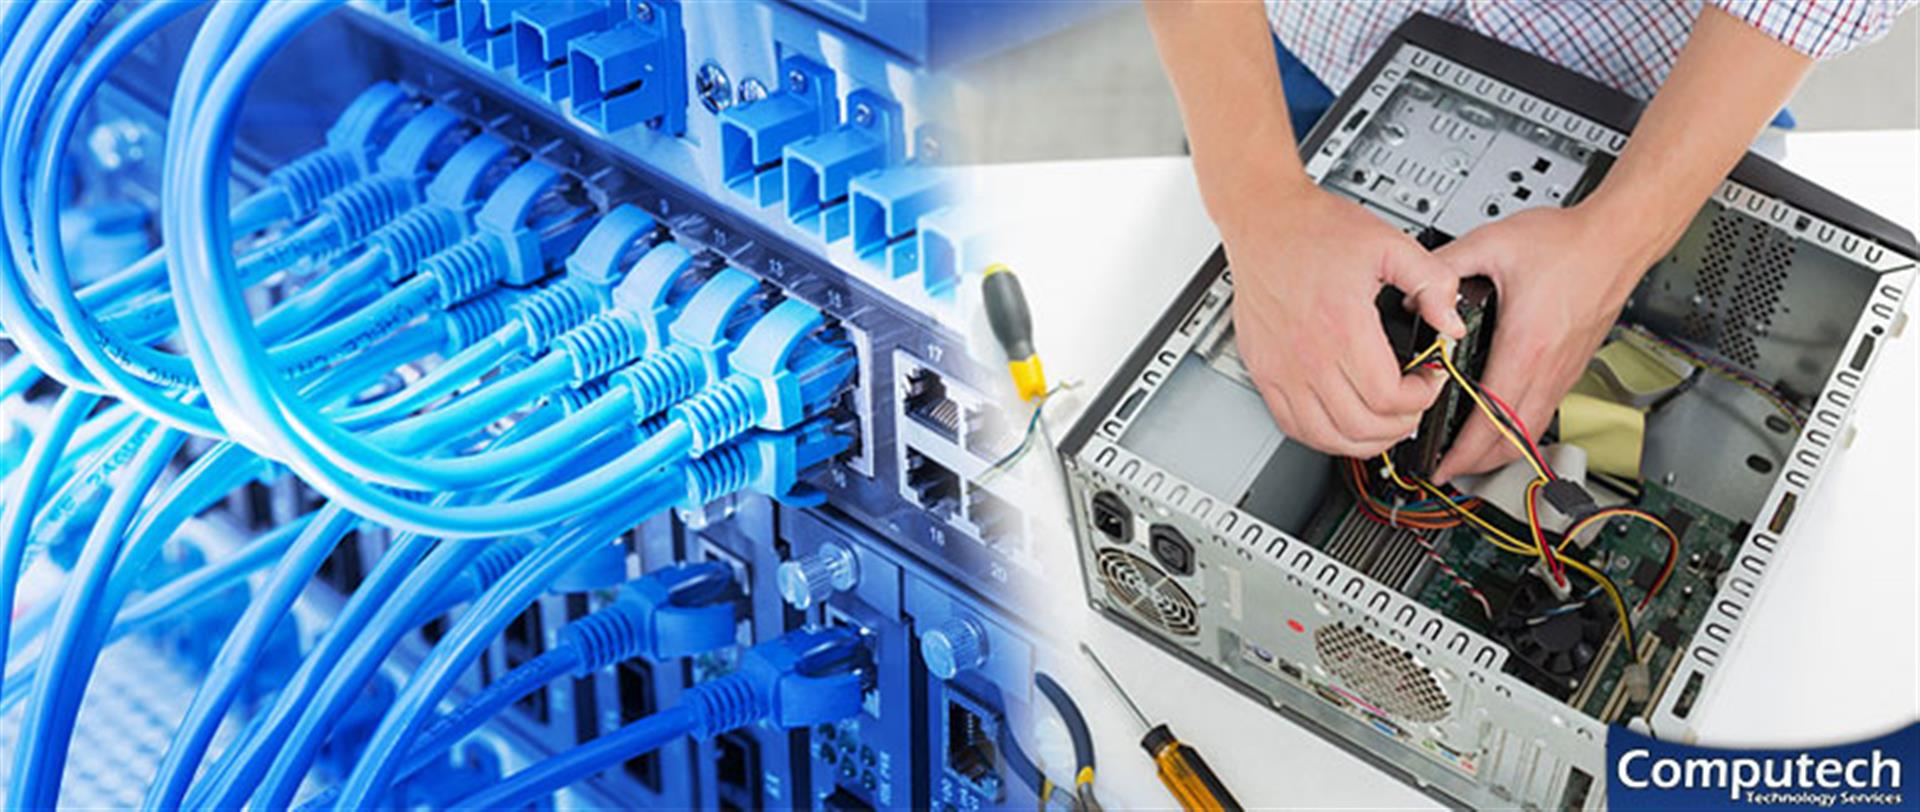 Temple Georgia On Site Computer & Printer Repair, Networks, Voice & Data Cabling Services